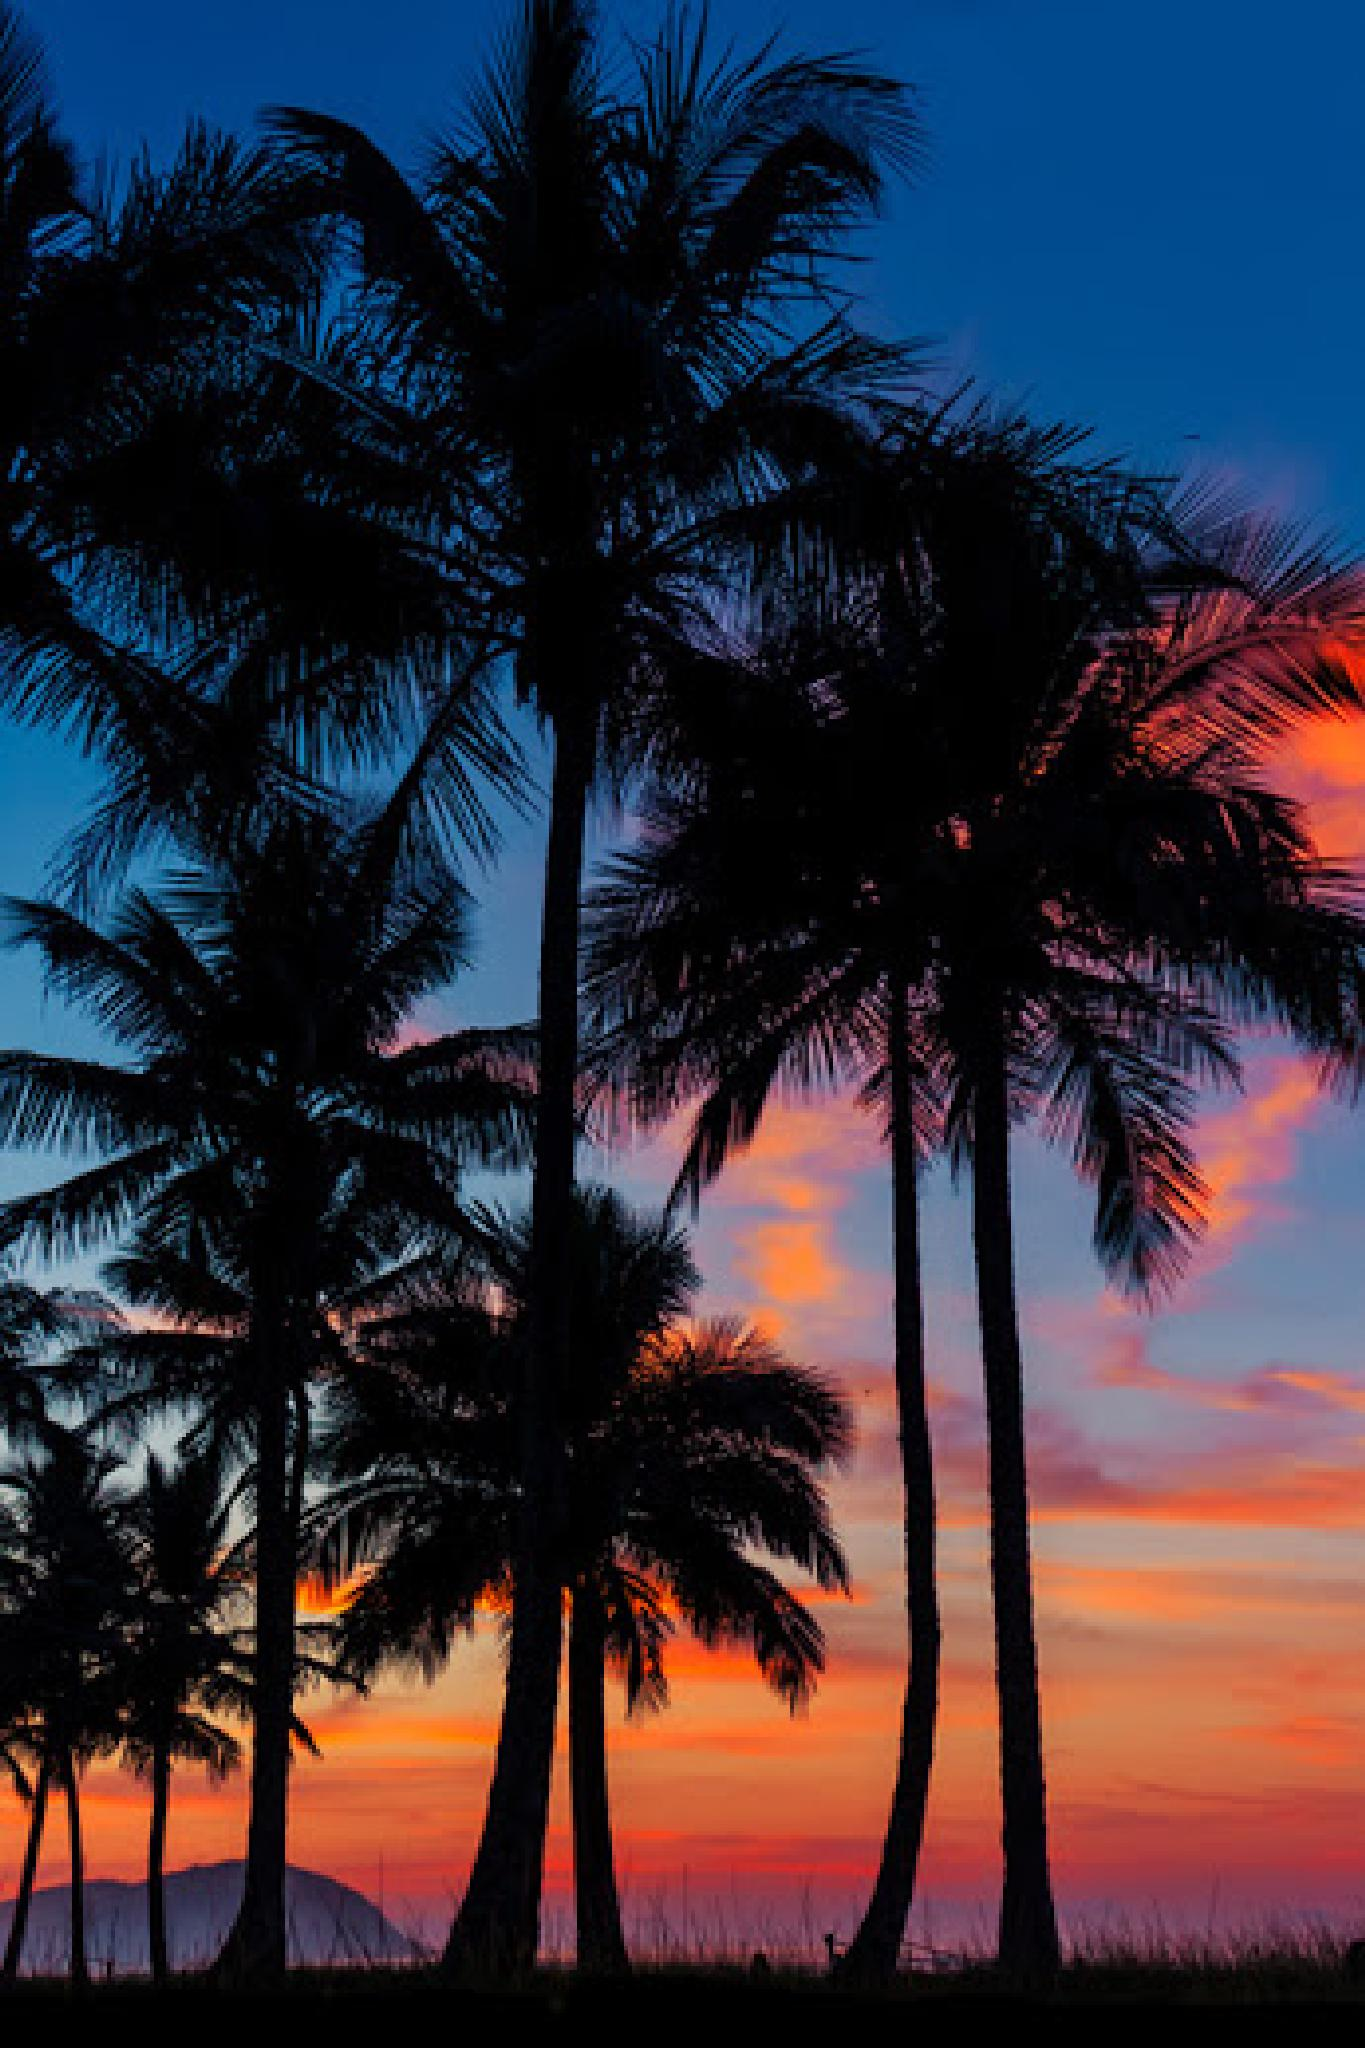 Palms in the Sunset by Serge Kay